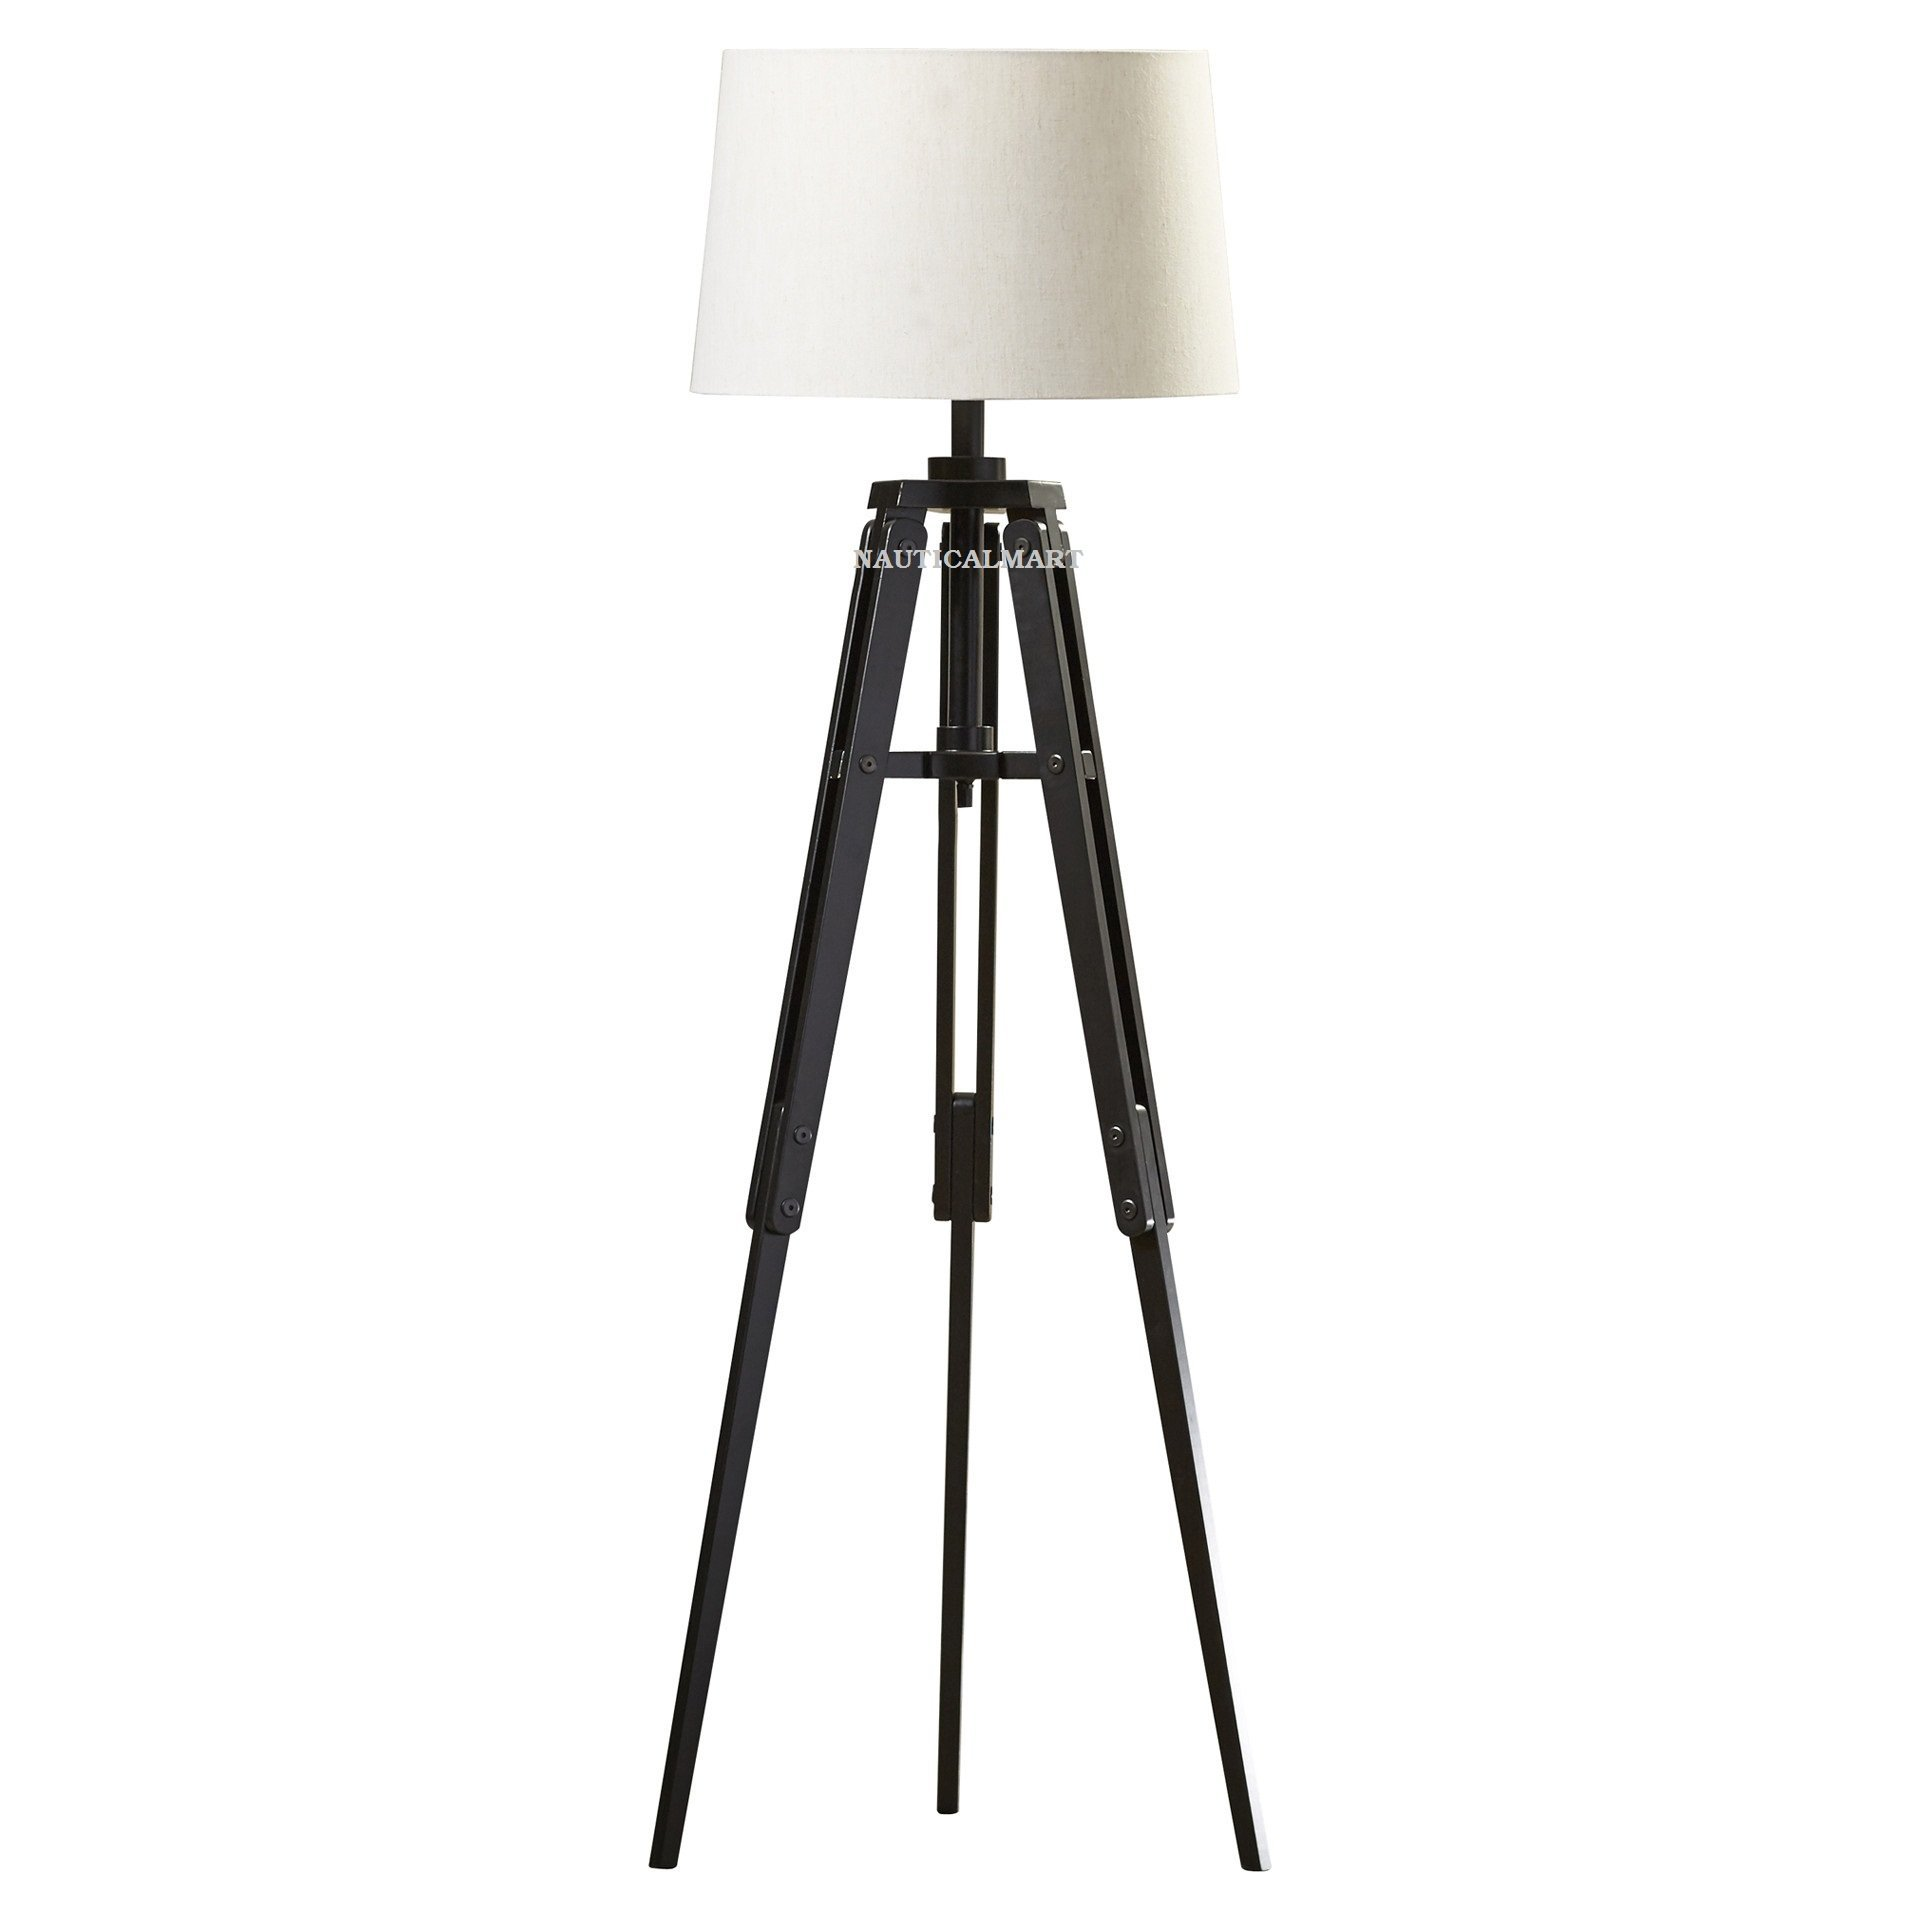 NAUTICALMART BLACK WOOD 62'' TRIPOD FLOOR LAMP FOR LIVING ROOM by NAUTICALMART